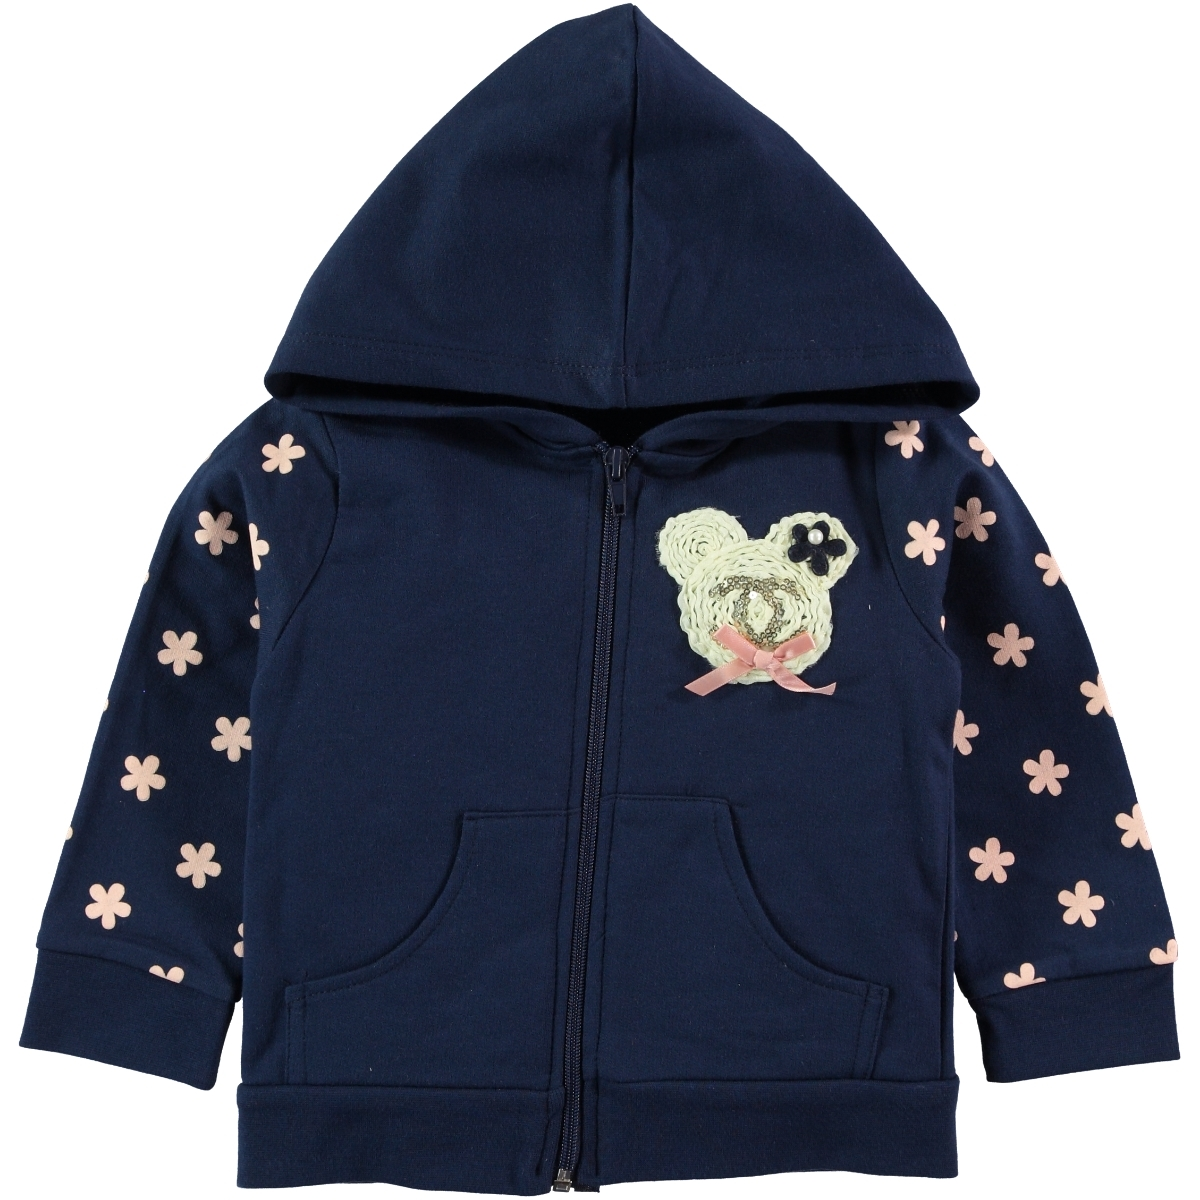 Pengim Navy Blue Hooded Cardigan For Girls Age 1-4